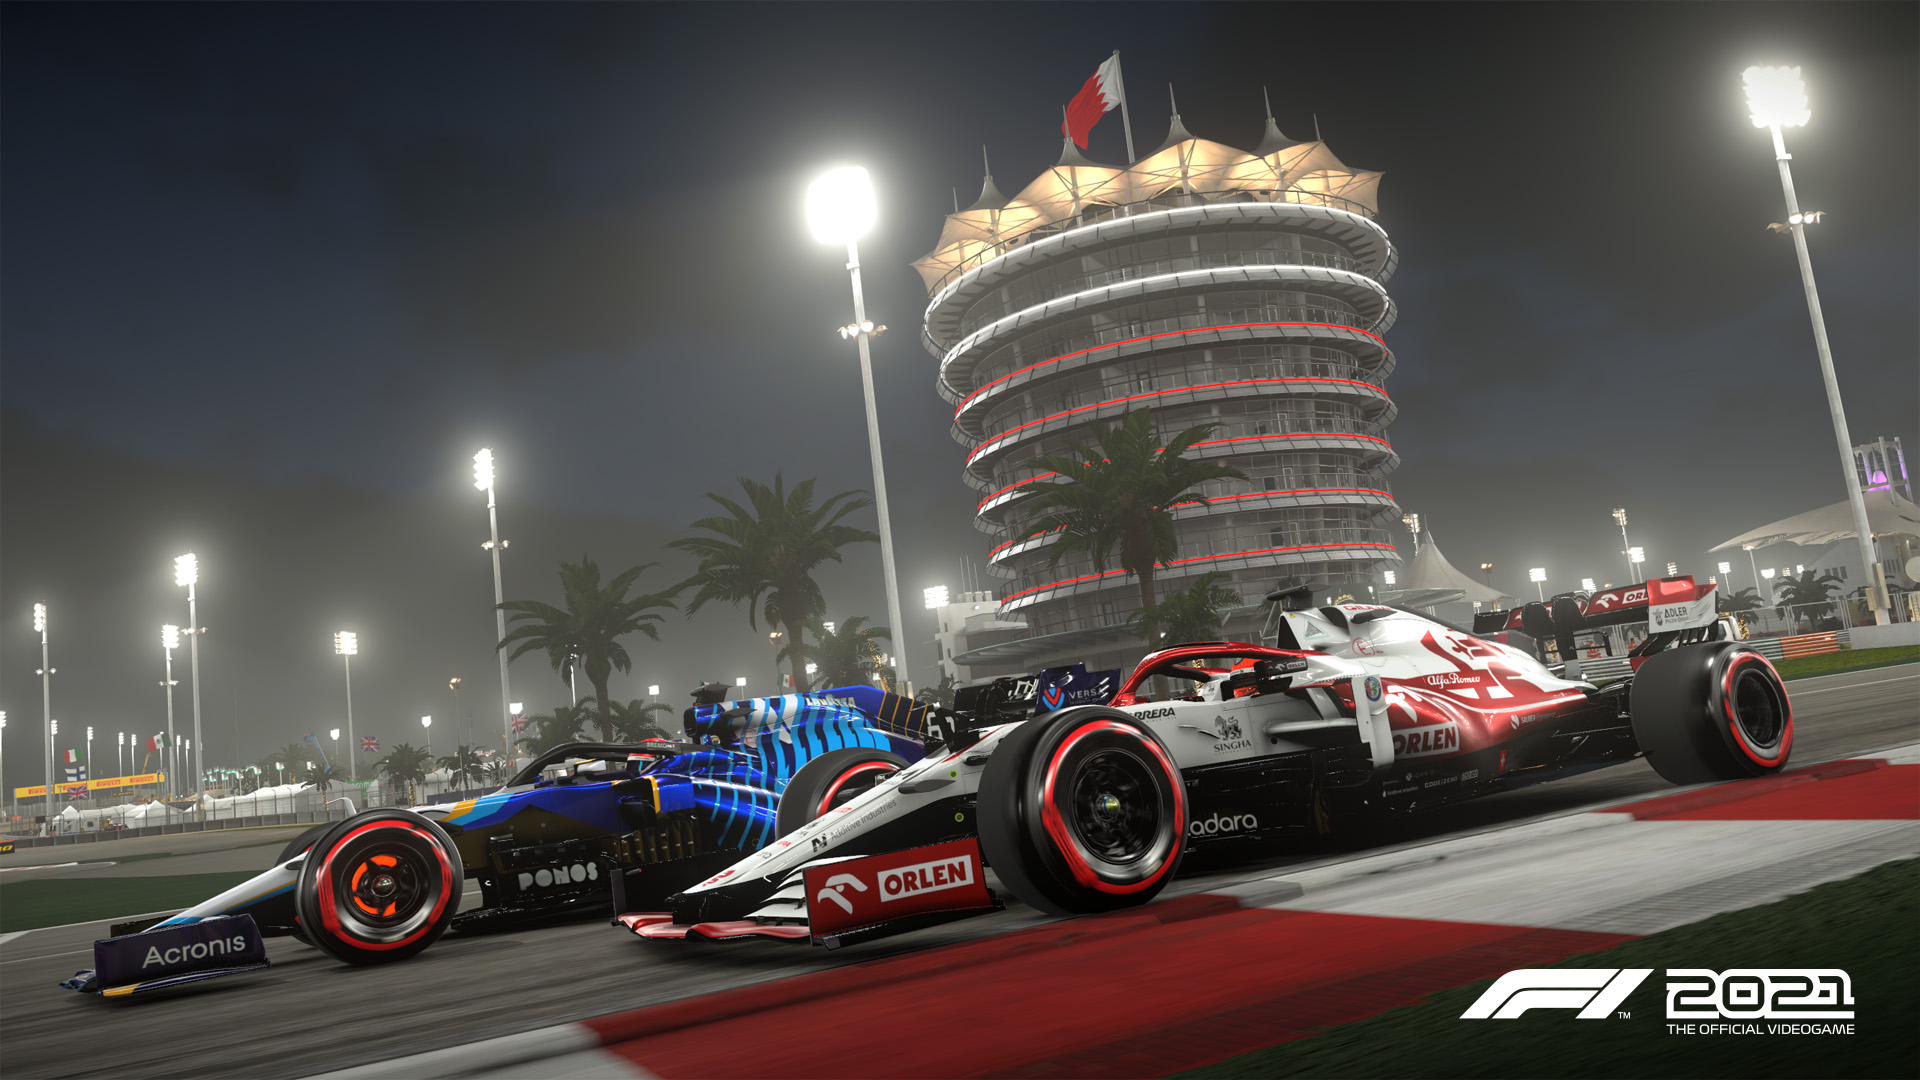 <em>F1 2021</em> will allow a lot more granular control than previous versions when it comes to setting up a championship.